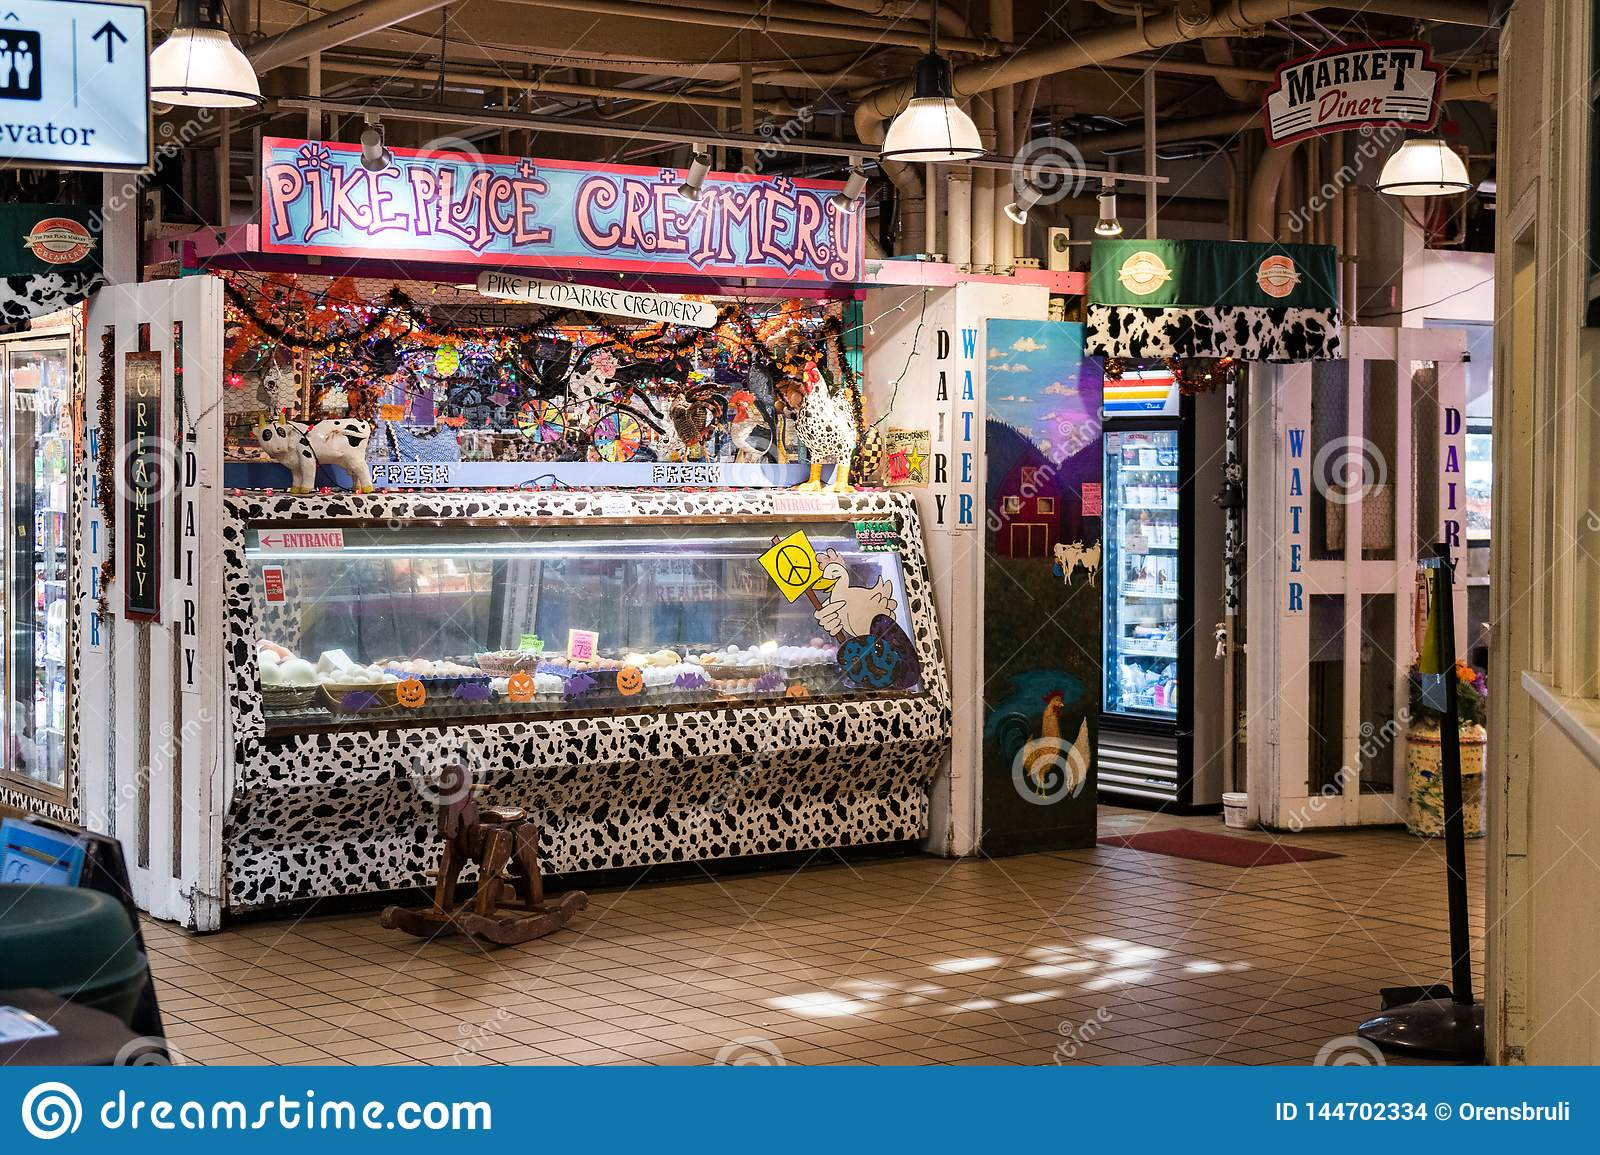 Ice cream shop inside Pike Market in Seattle, Washington, USA